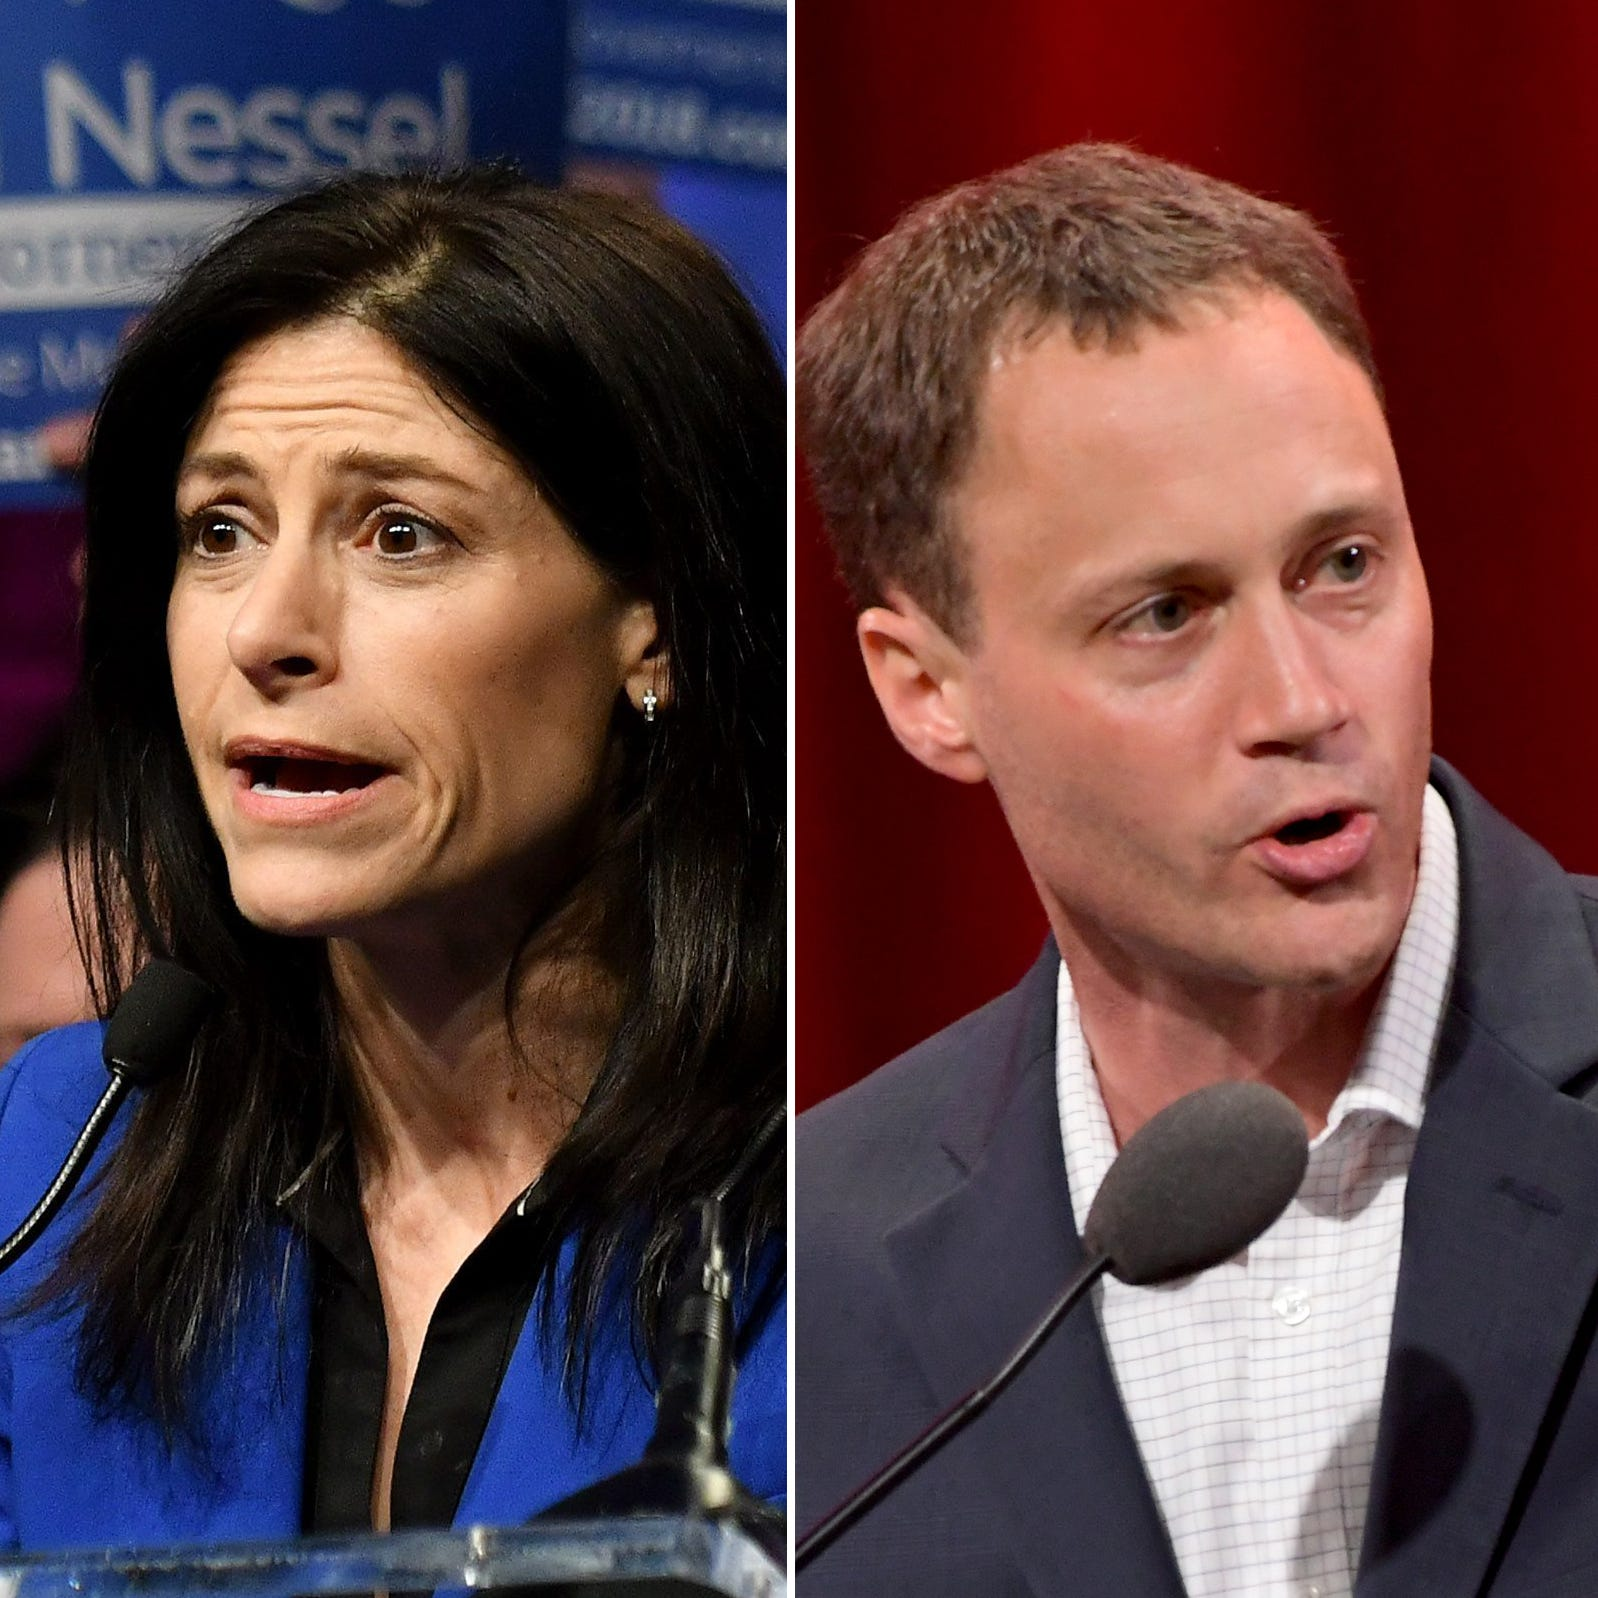 Leonard: Nessel 'unfit' for attorney general after reported campaign 'chaos'